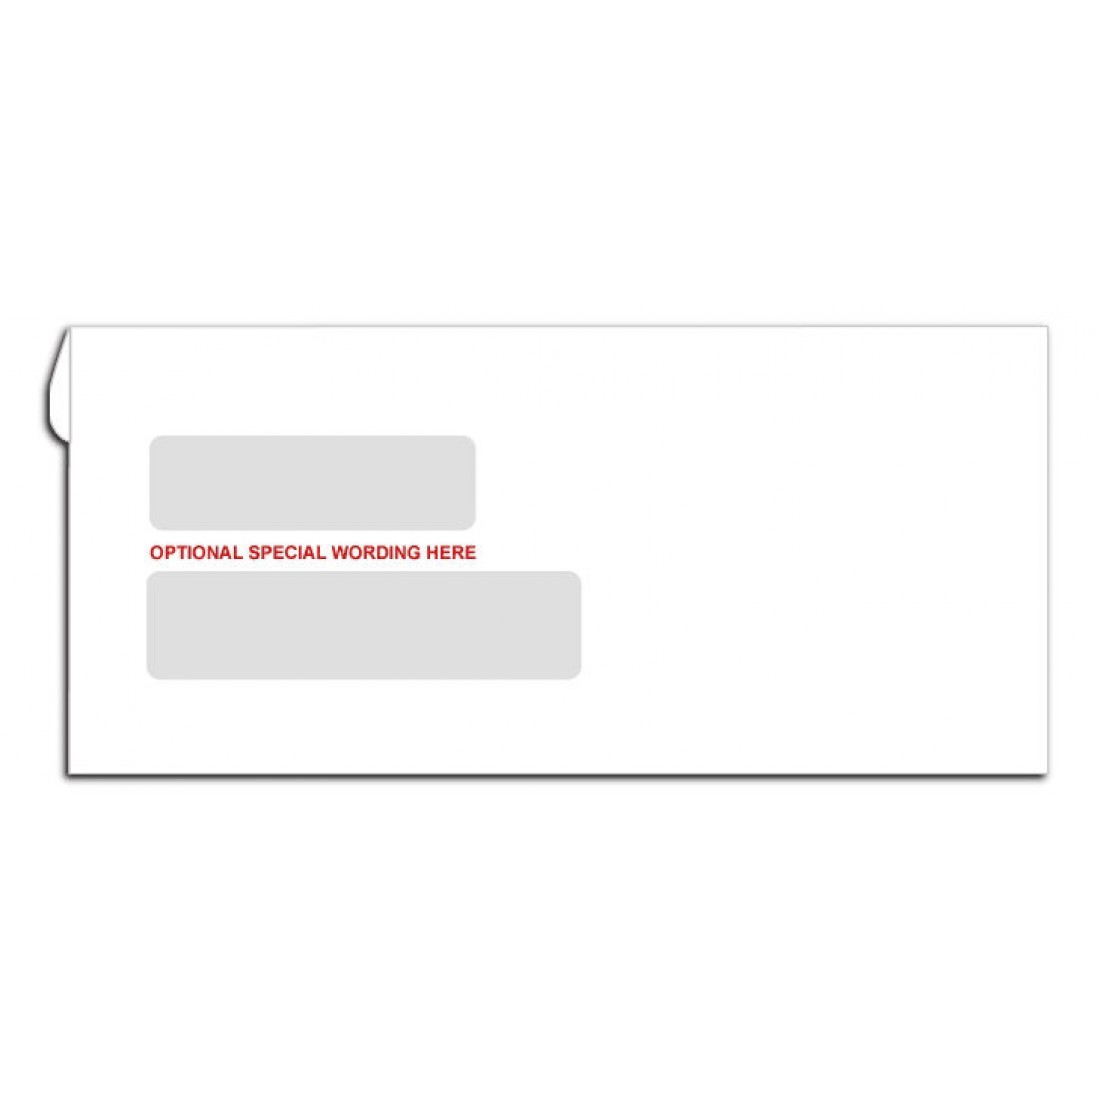 Double window envelopes classic collection free shipping for Window envelopes